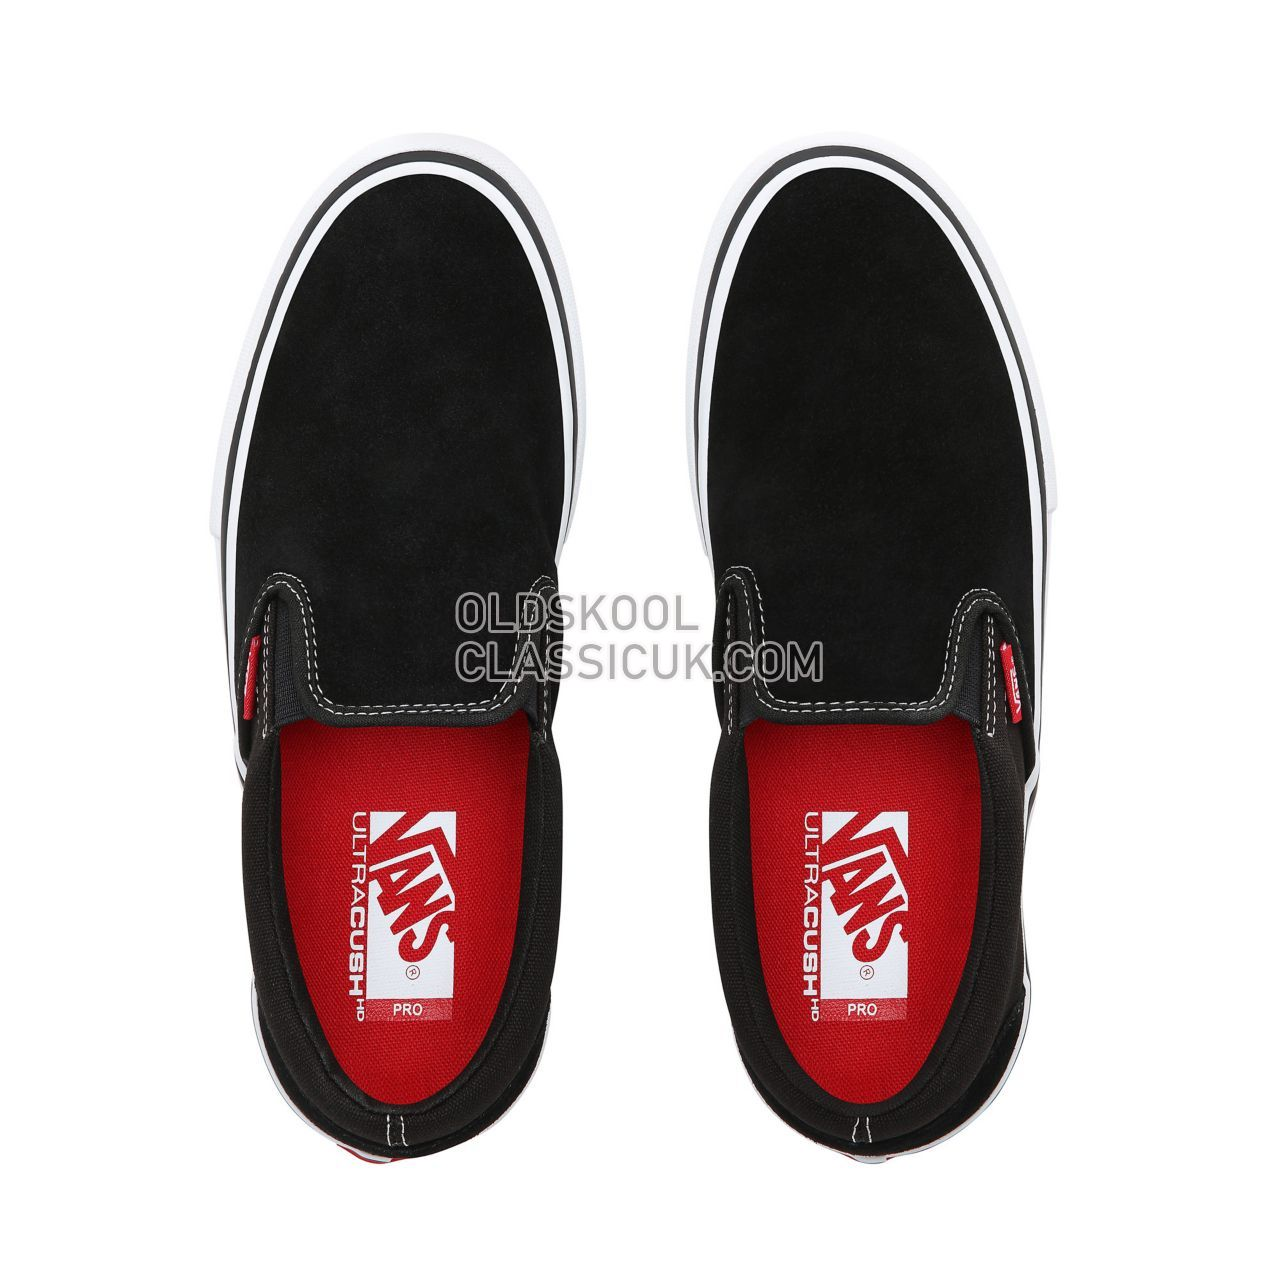 Vans Slip-On Pro Sneakers Mens Black/White/Gum VN00097M9X1 Shoes